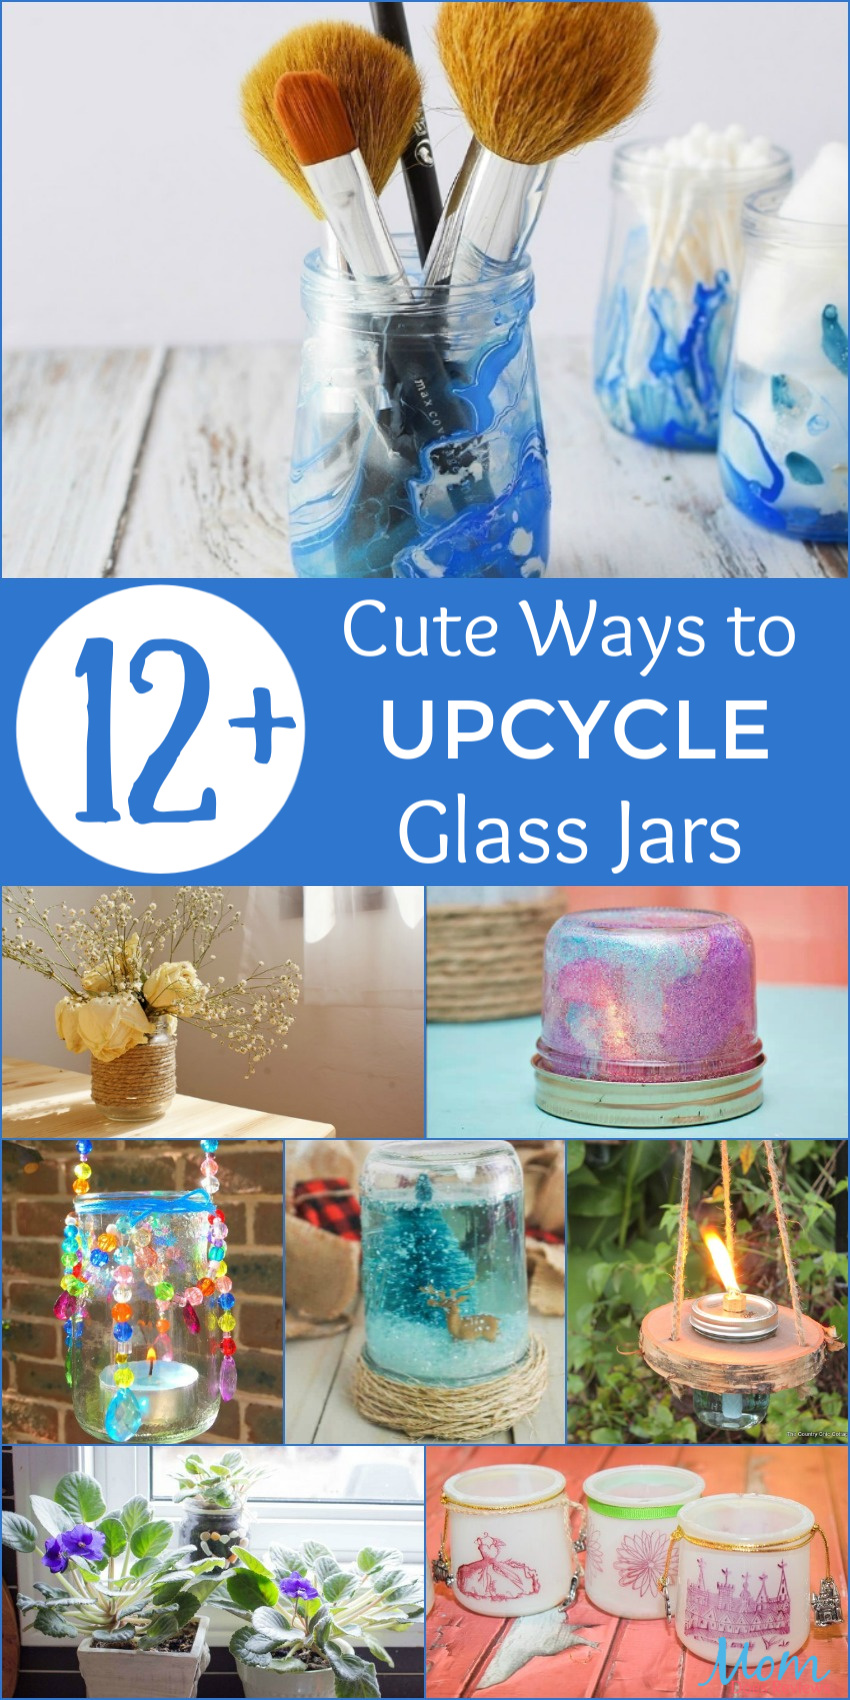 12+ Cute Ways to Upcycle Glass Jars #DIY #earthday #recycle #Crafts